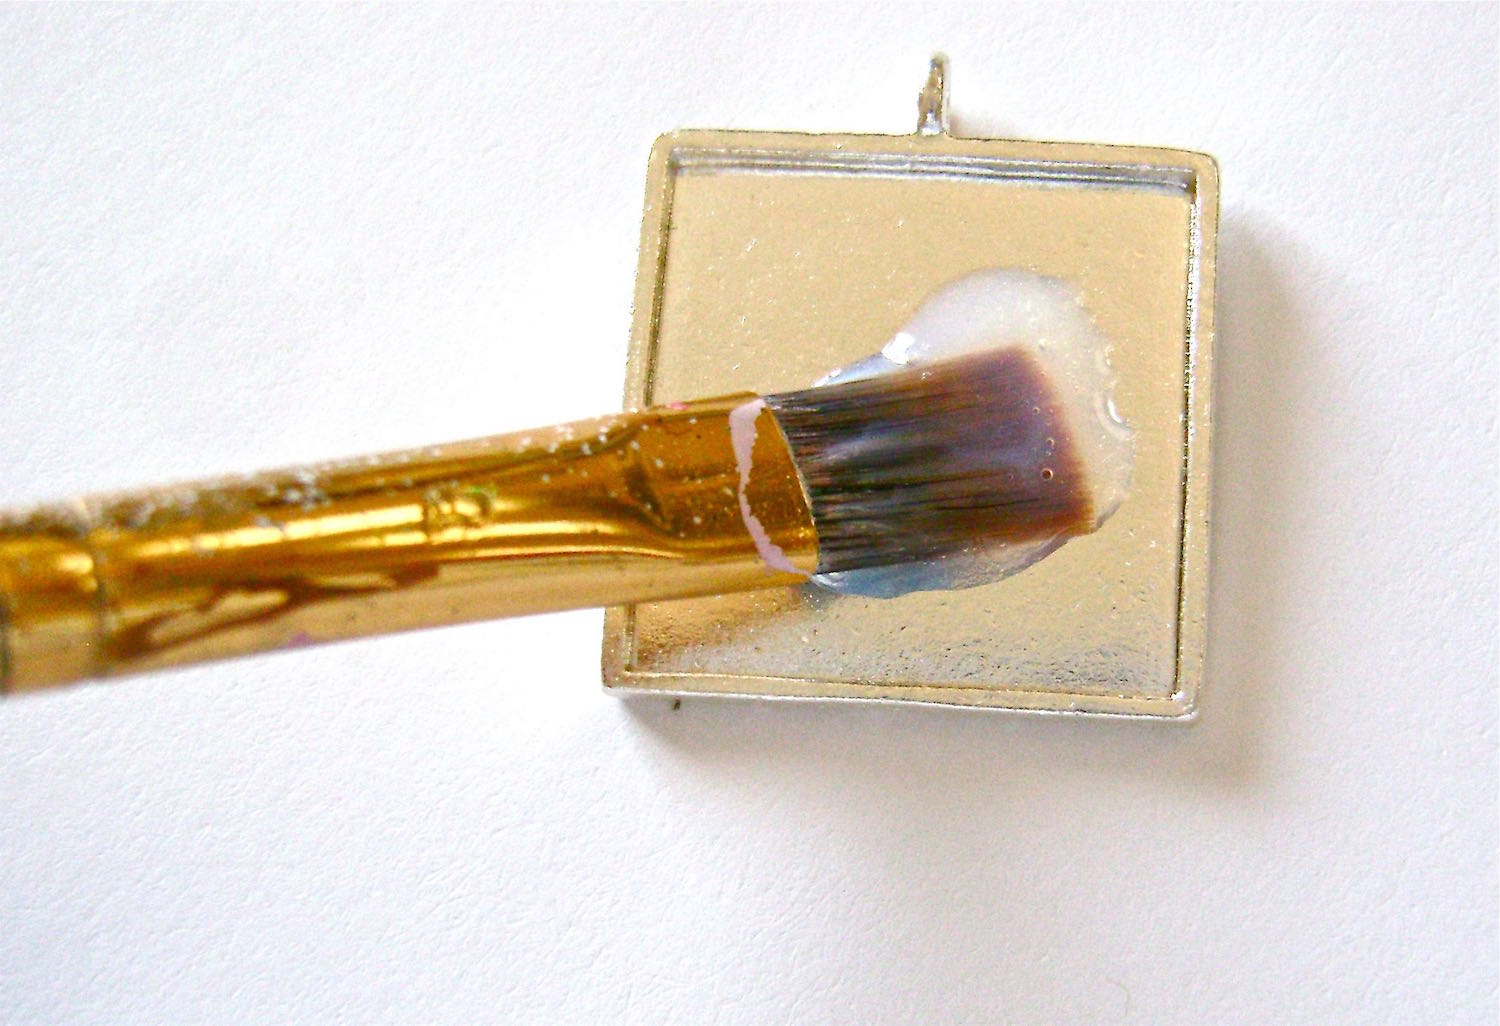 step 2 - Fill a small container with Diamond Glaze.  Using a brush, apply a light coat of glaze to the inside of the pendant frame.  Be sure to get into the corners.